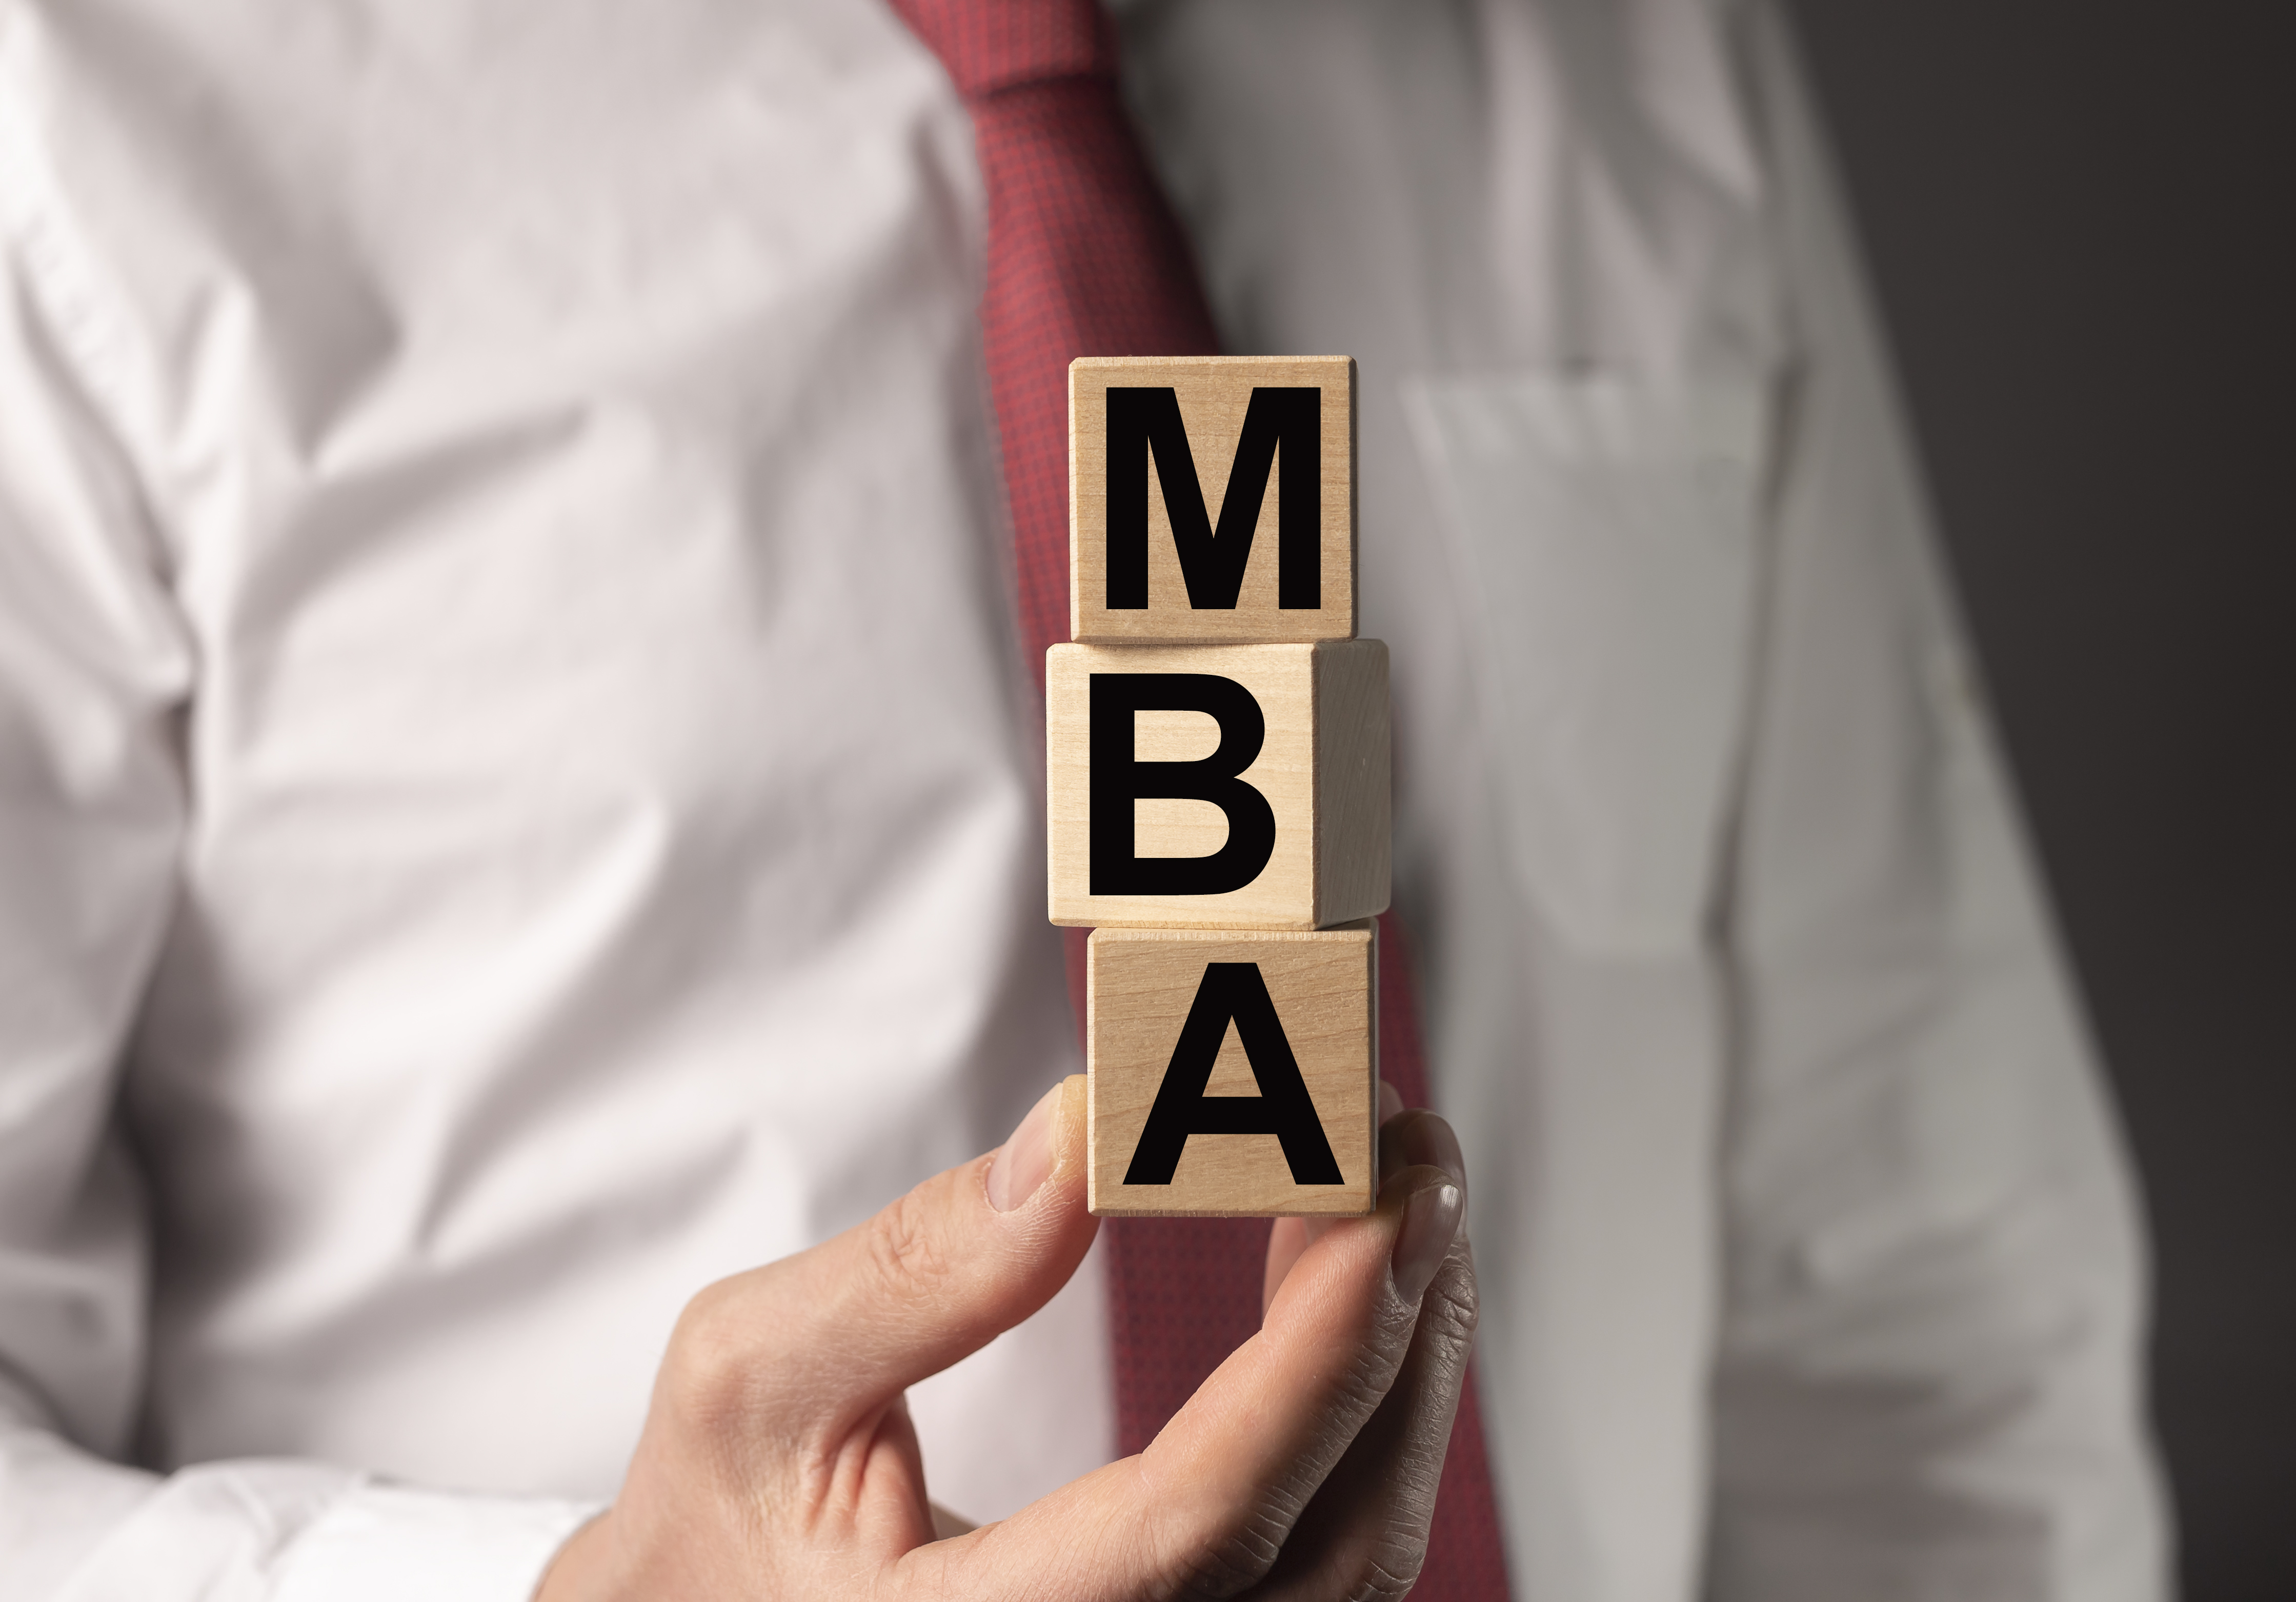 mba-acronym-master-business-administration-degree-education-concept-businessman-hands-with-cubes.jpg